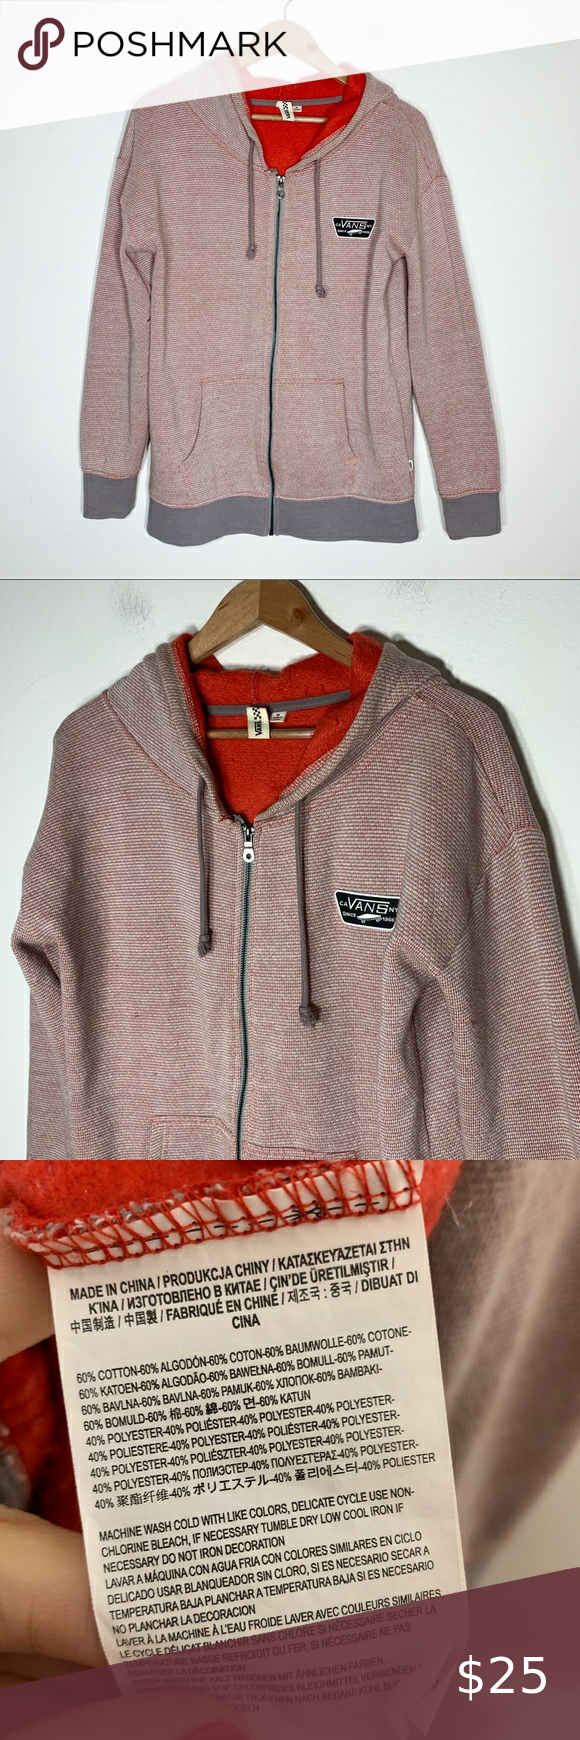 Vans Red Gray Zip Up Hooded Sweatshirt Great Pre Owned Condition No Issues Red And Gray Knit Fleece Hooded Sweatshirts Mens Sweatshirts Hoodie Grey Zip Ups [ 1740 x 580 Pixel ]